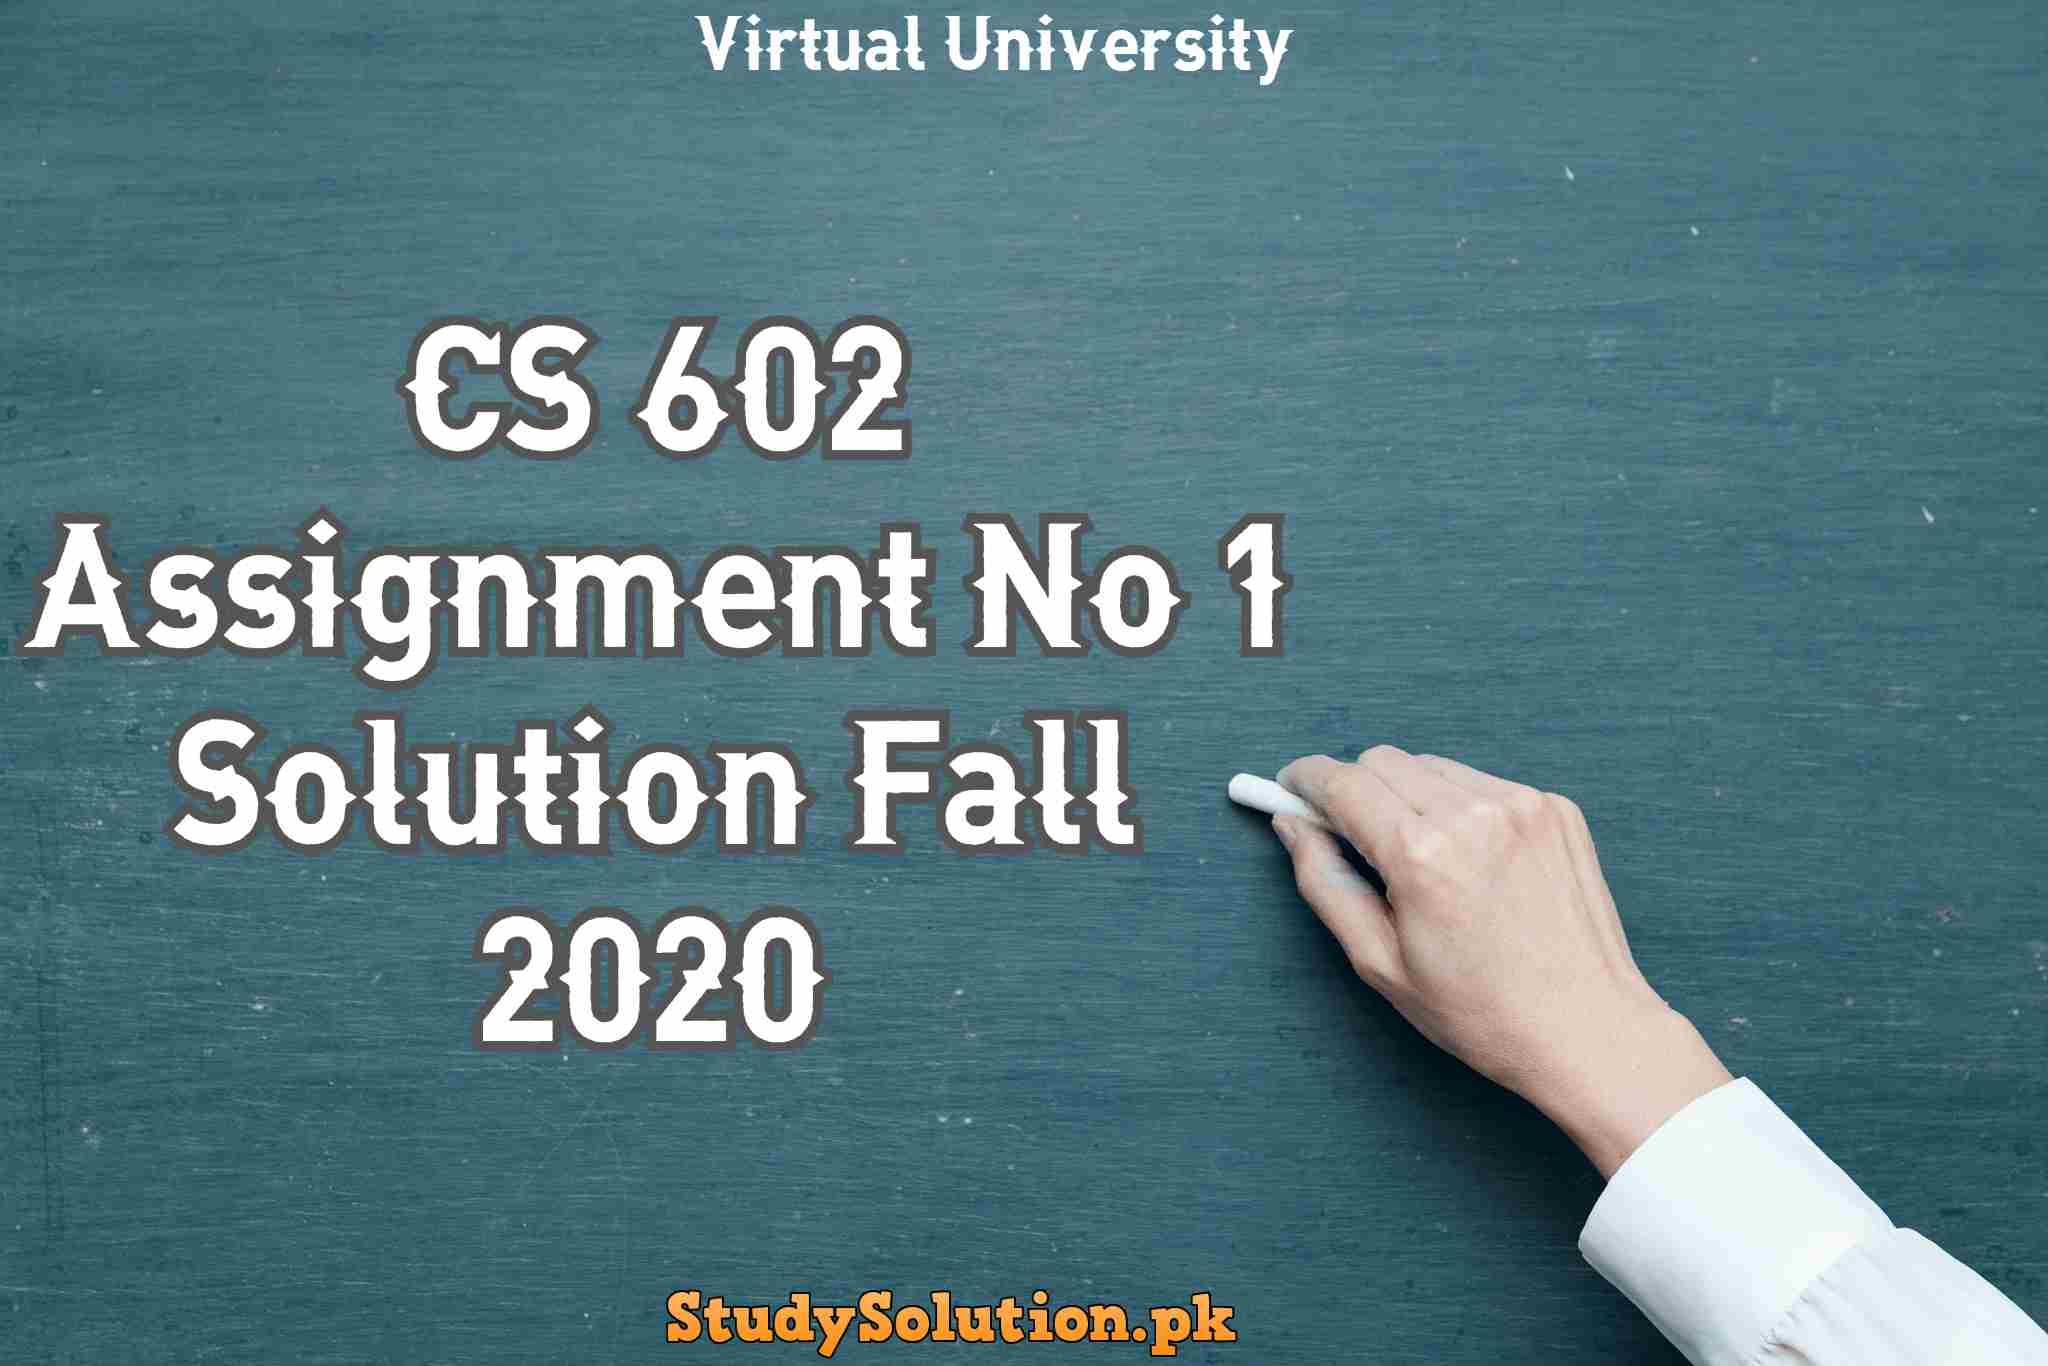 CS 602 Assignment No 1 Solution Fall 2020